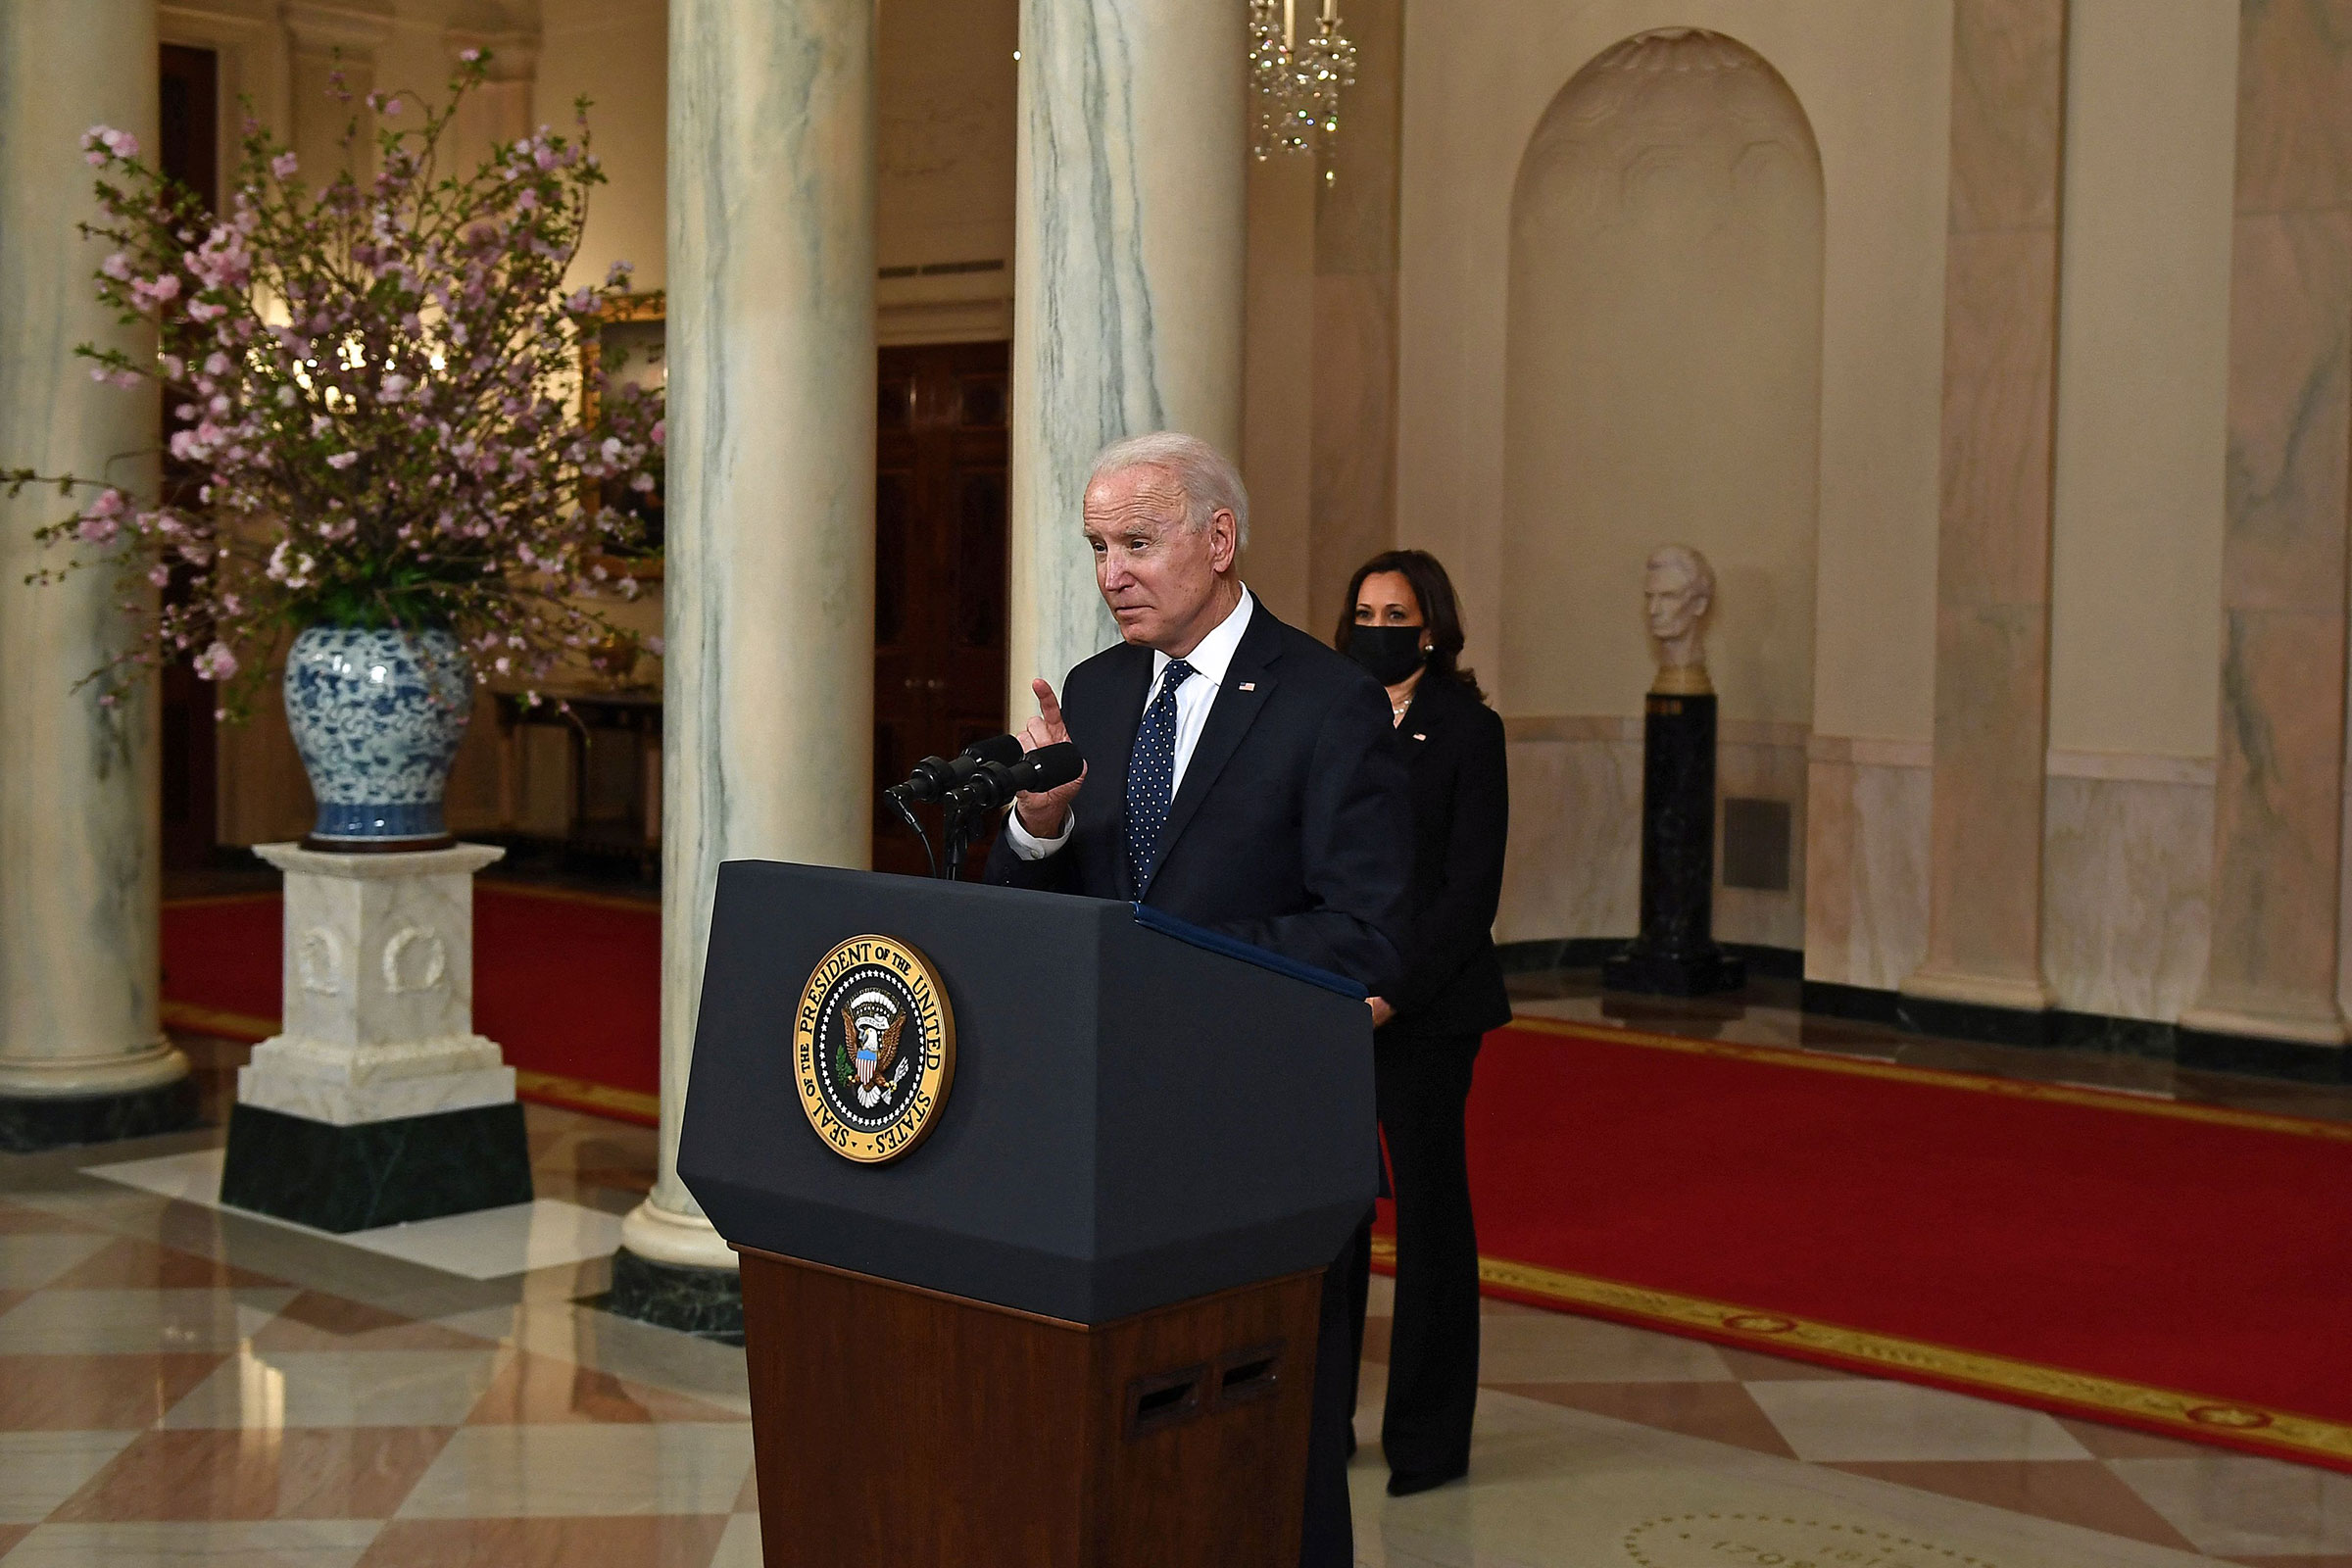 Vice President Kamala Harris listens as President Joe Biden delivers remarks on the guilty verdict against former policeman Derek Chauvin at the White House on April 20, 2021.